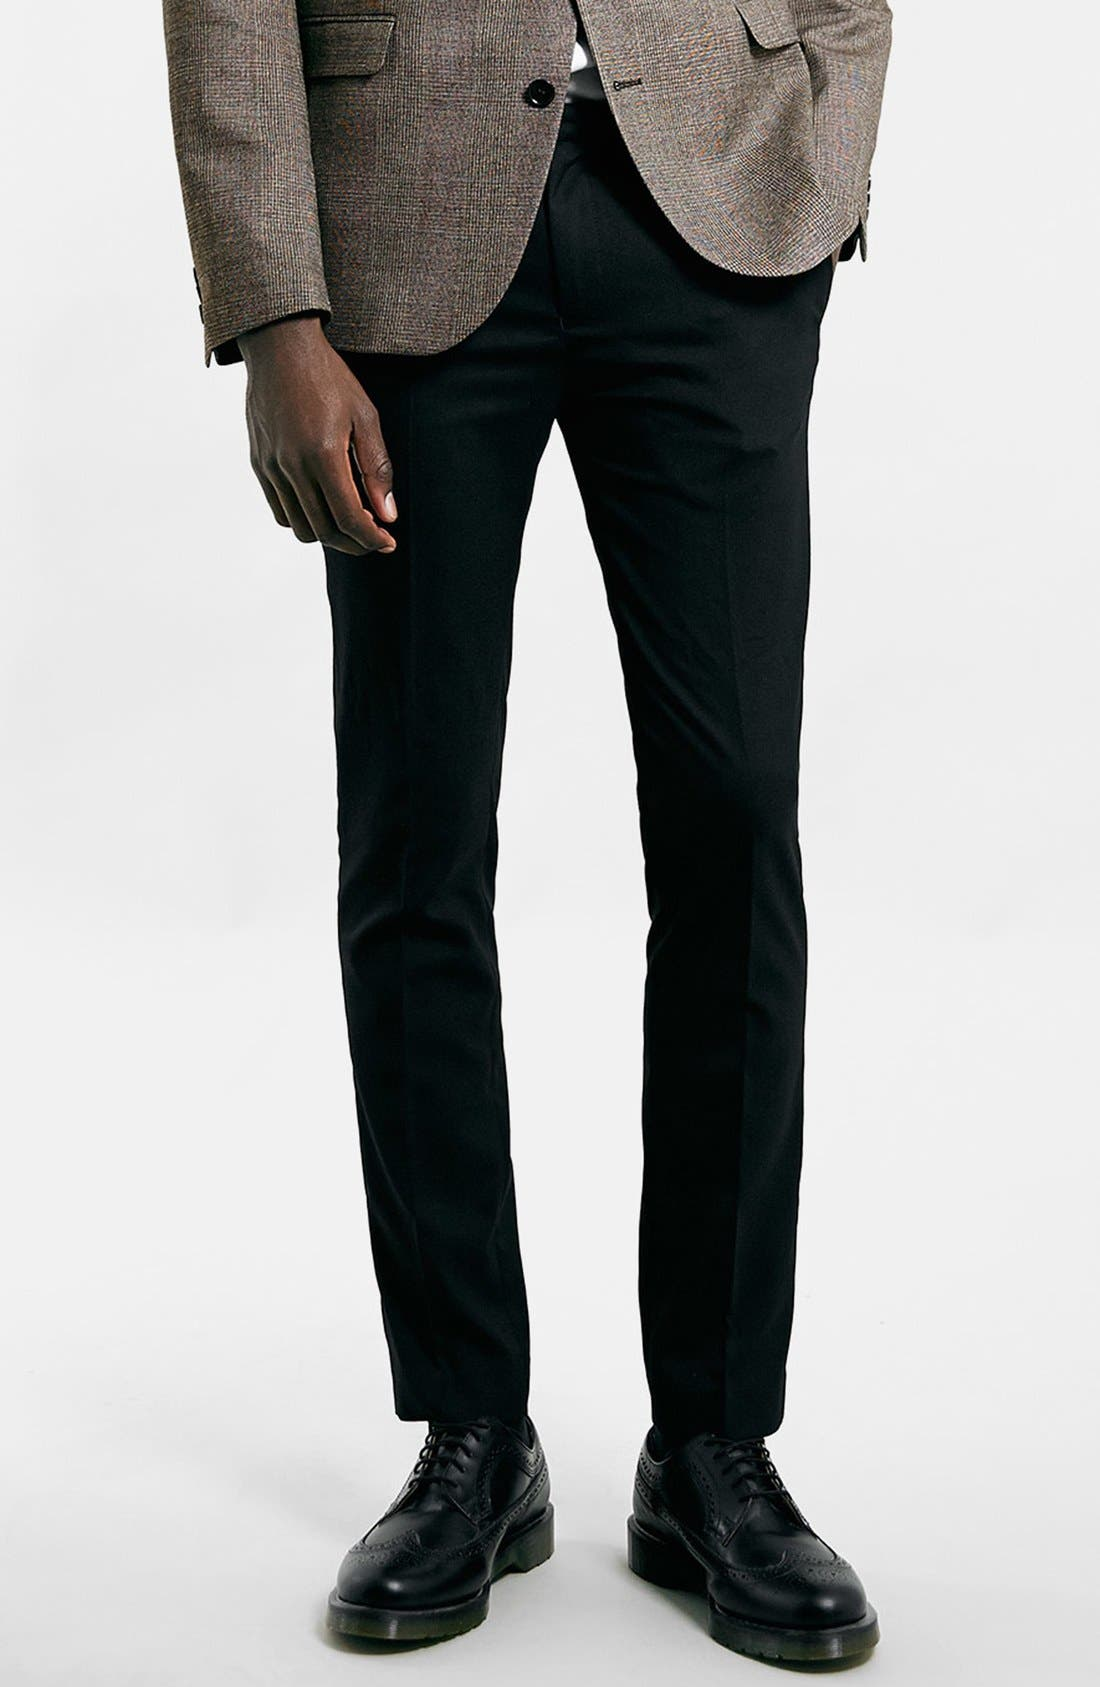 Ultra Skinny Black Suit Trousers,                         Main,                         color, Black